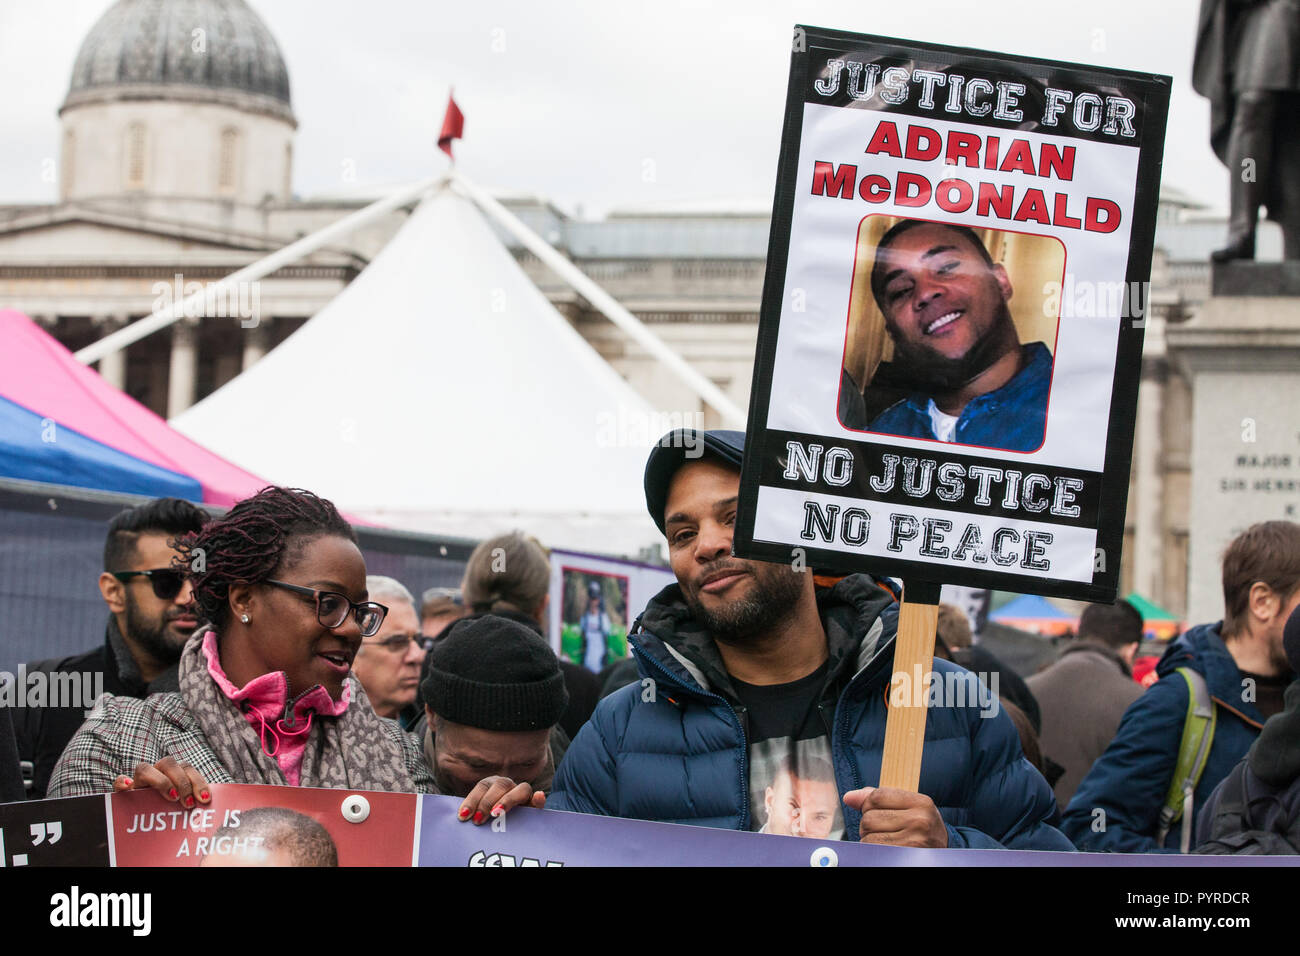 London, UK. 27th October, 2018. The Justice for Adrian McDonald campaign prepares to march with the United Families and Friends Campaign to Downing St - Stock Image